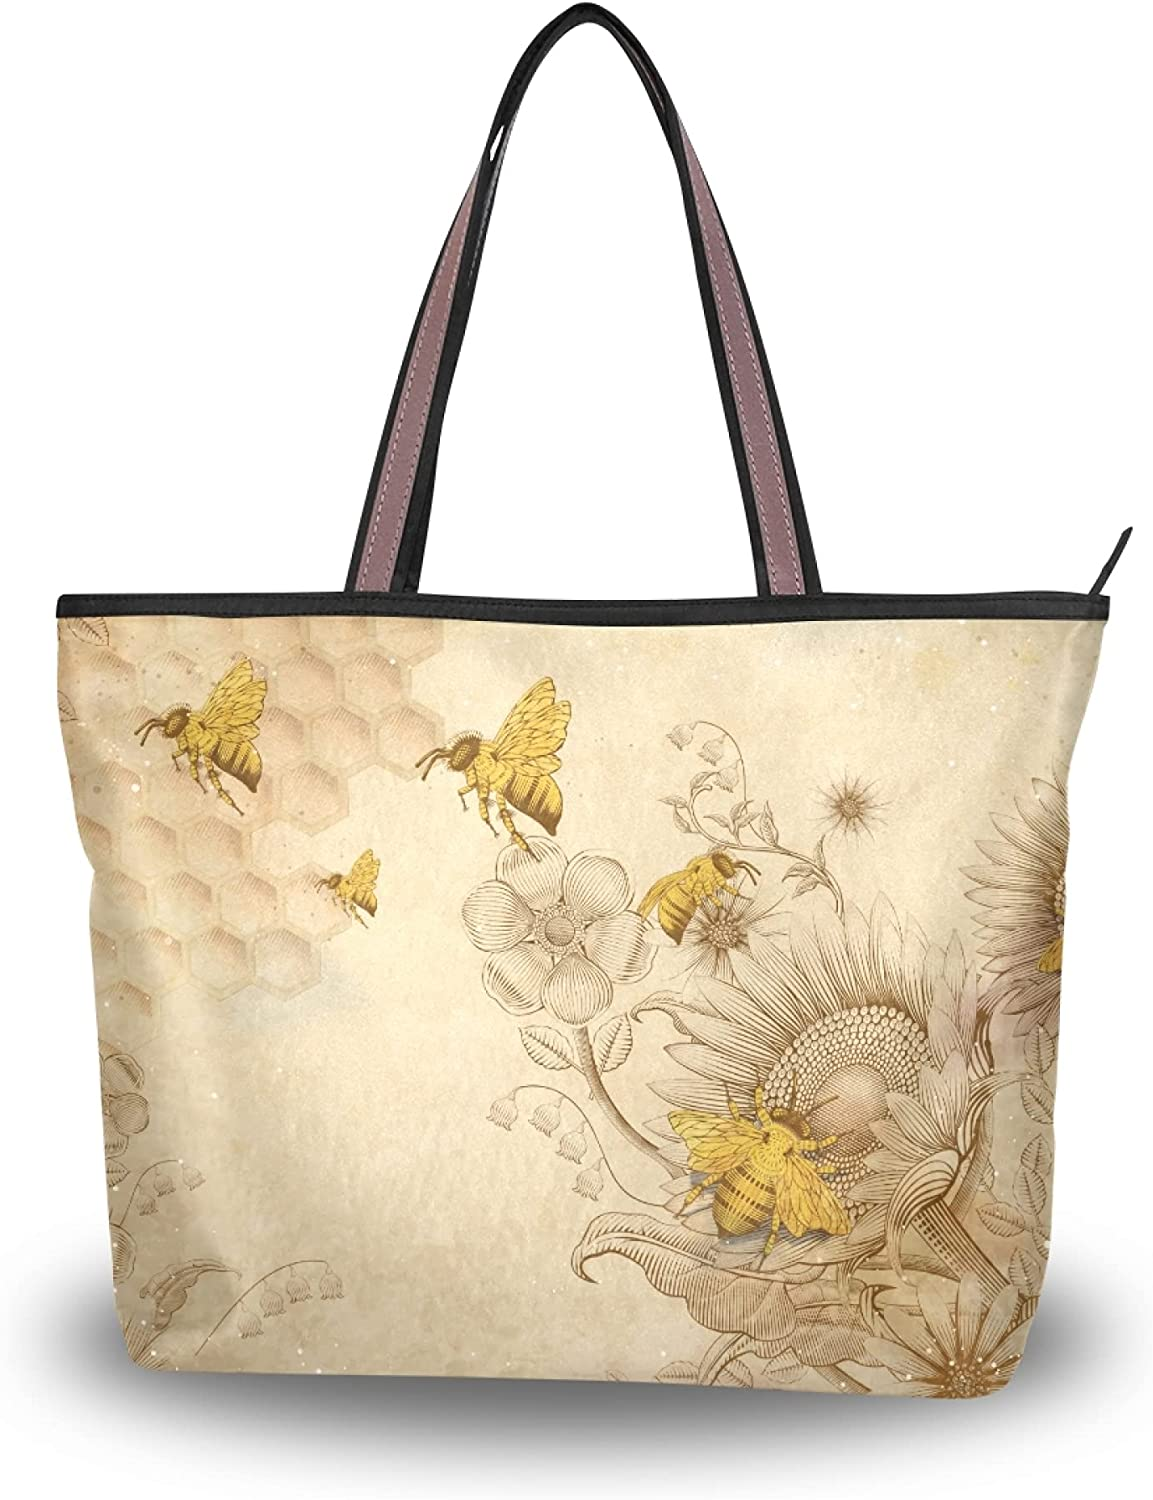 Our shop Max 46% OFF OFFers the best service Linqin Women's Shoulder Handbags Tote closure Purse with Zipper